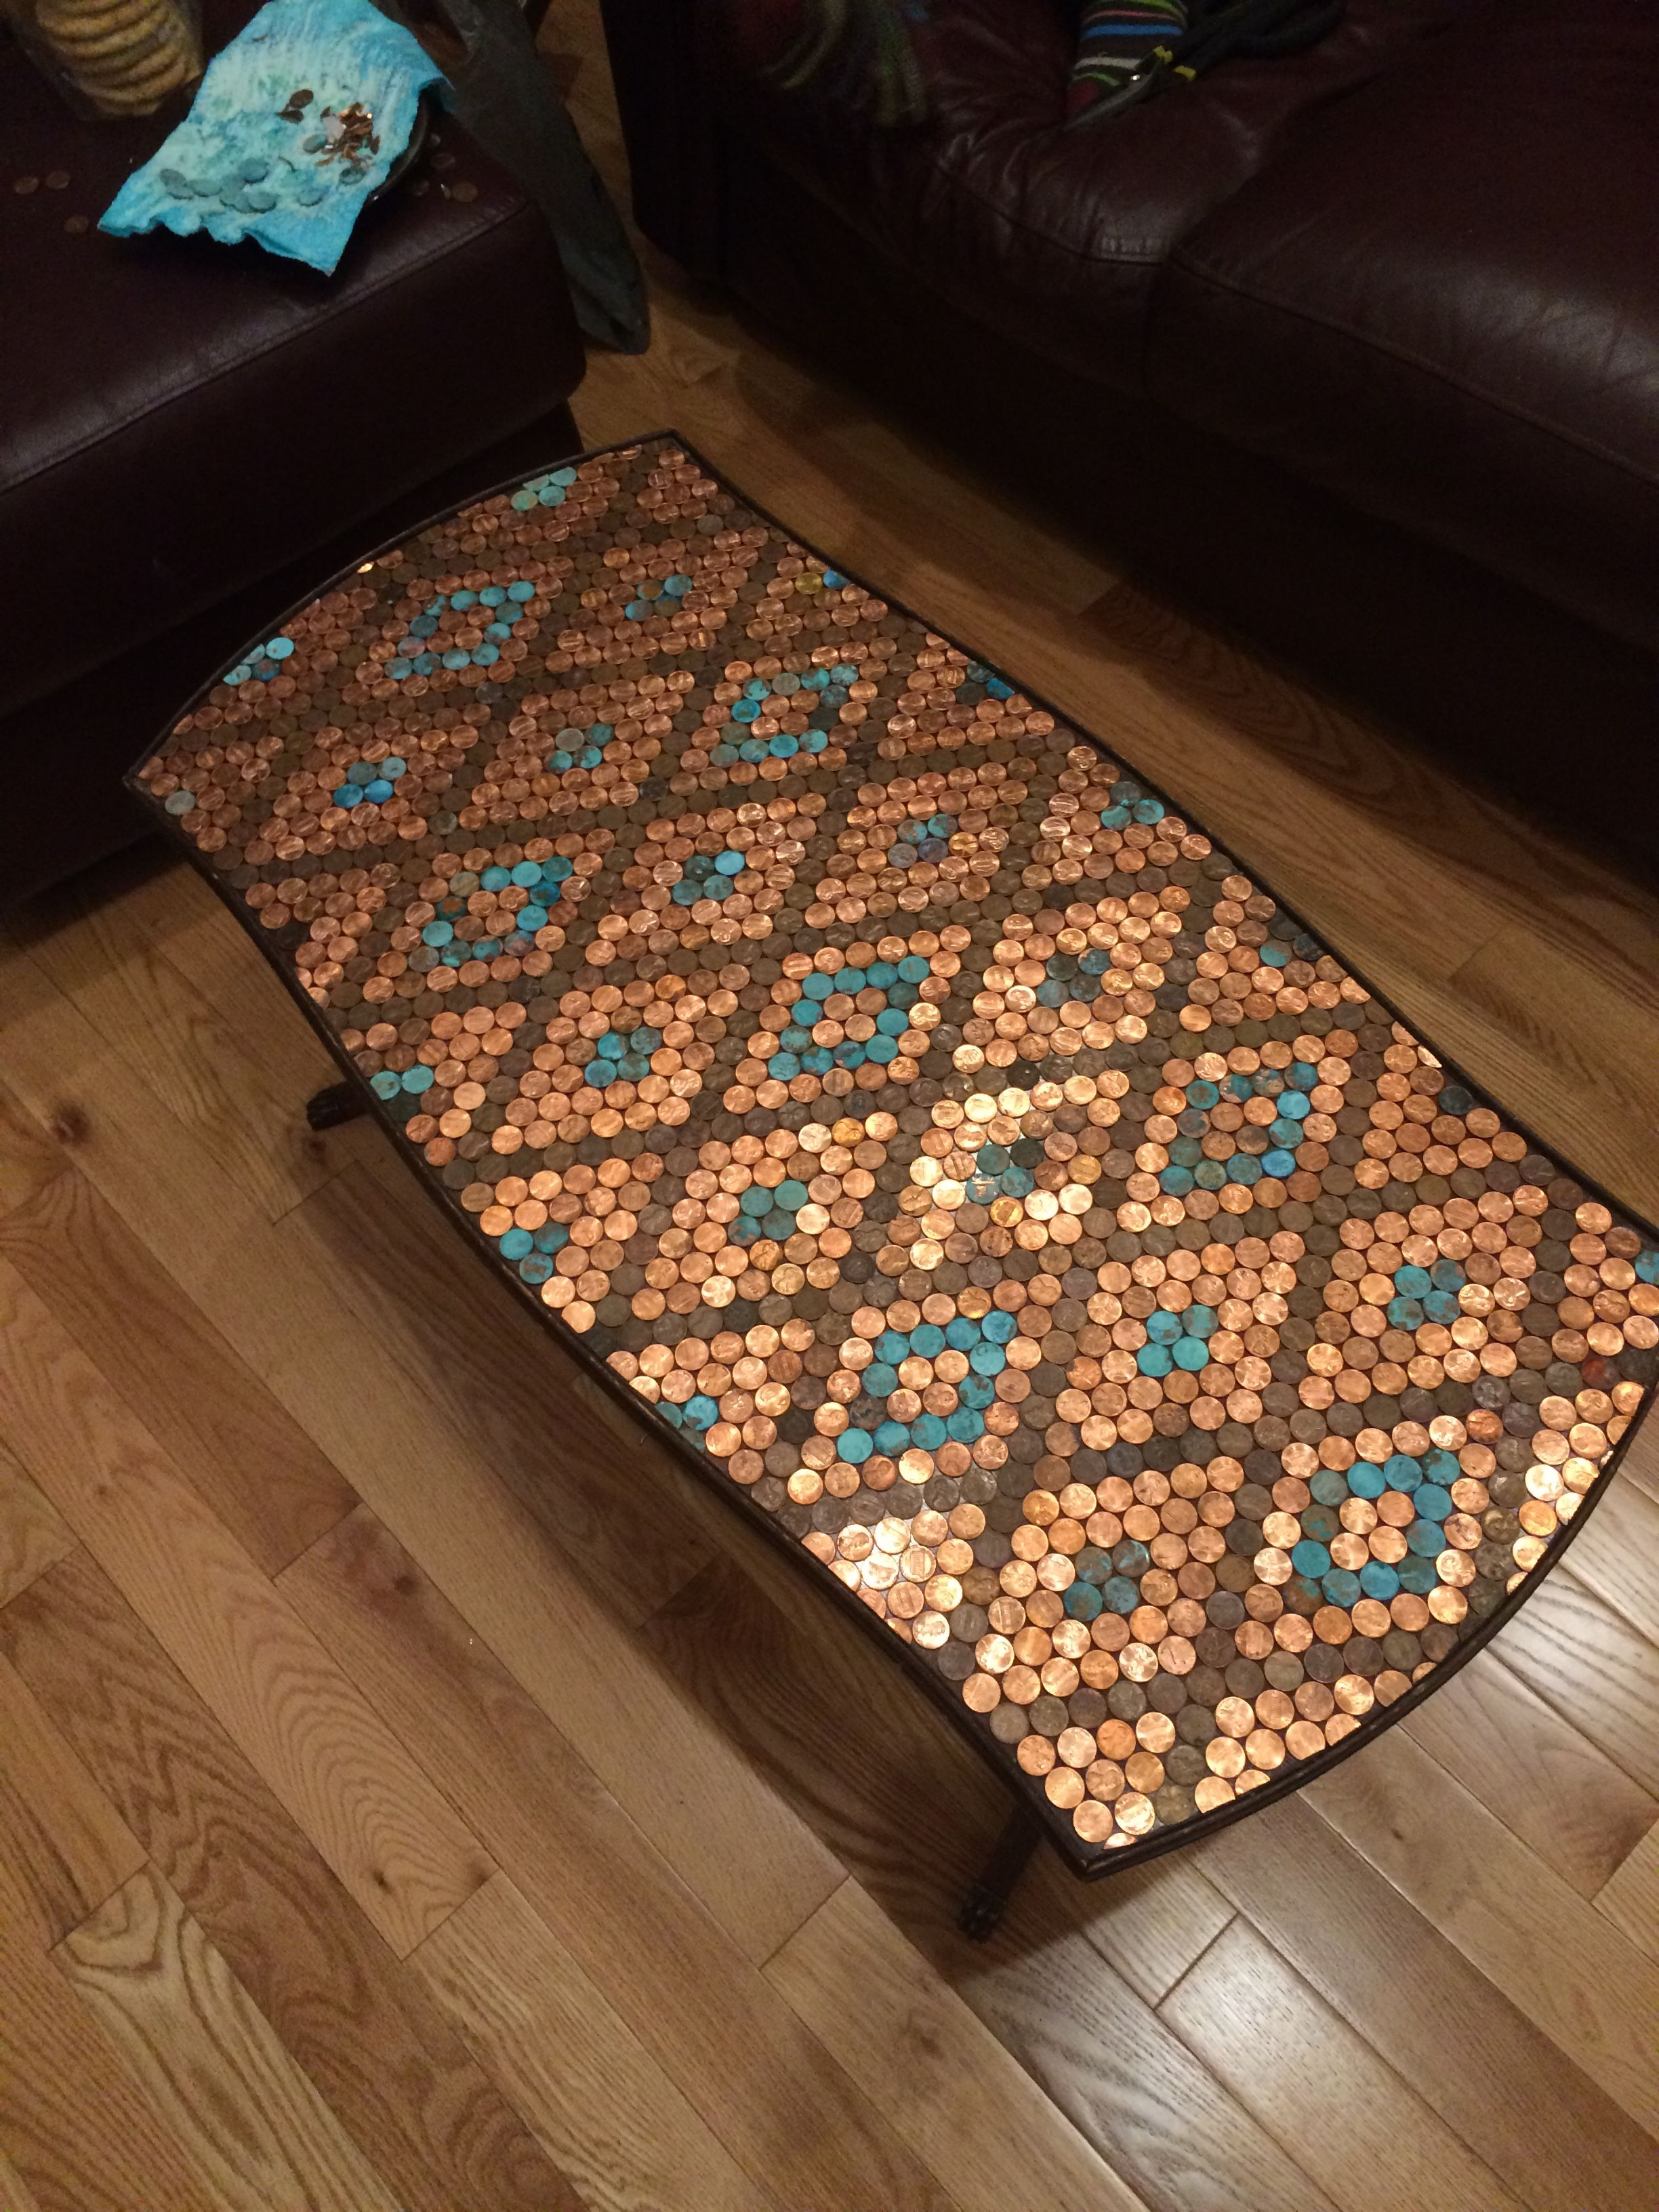 Penny Top Table Created With Epoxy And Corroded Pennies Epoxy